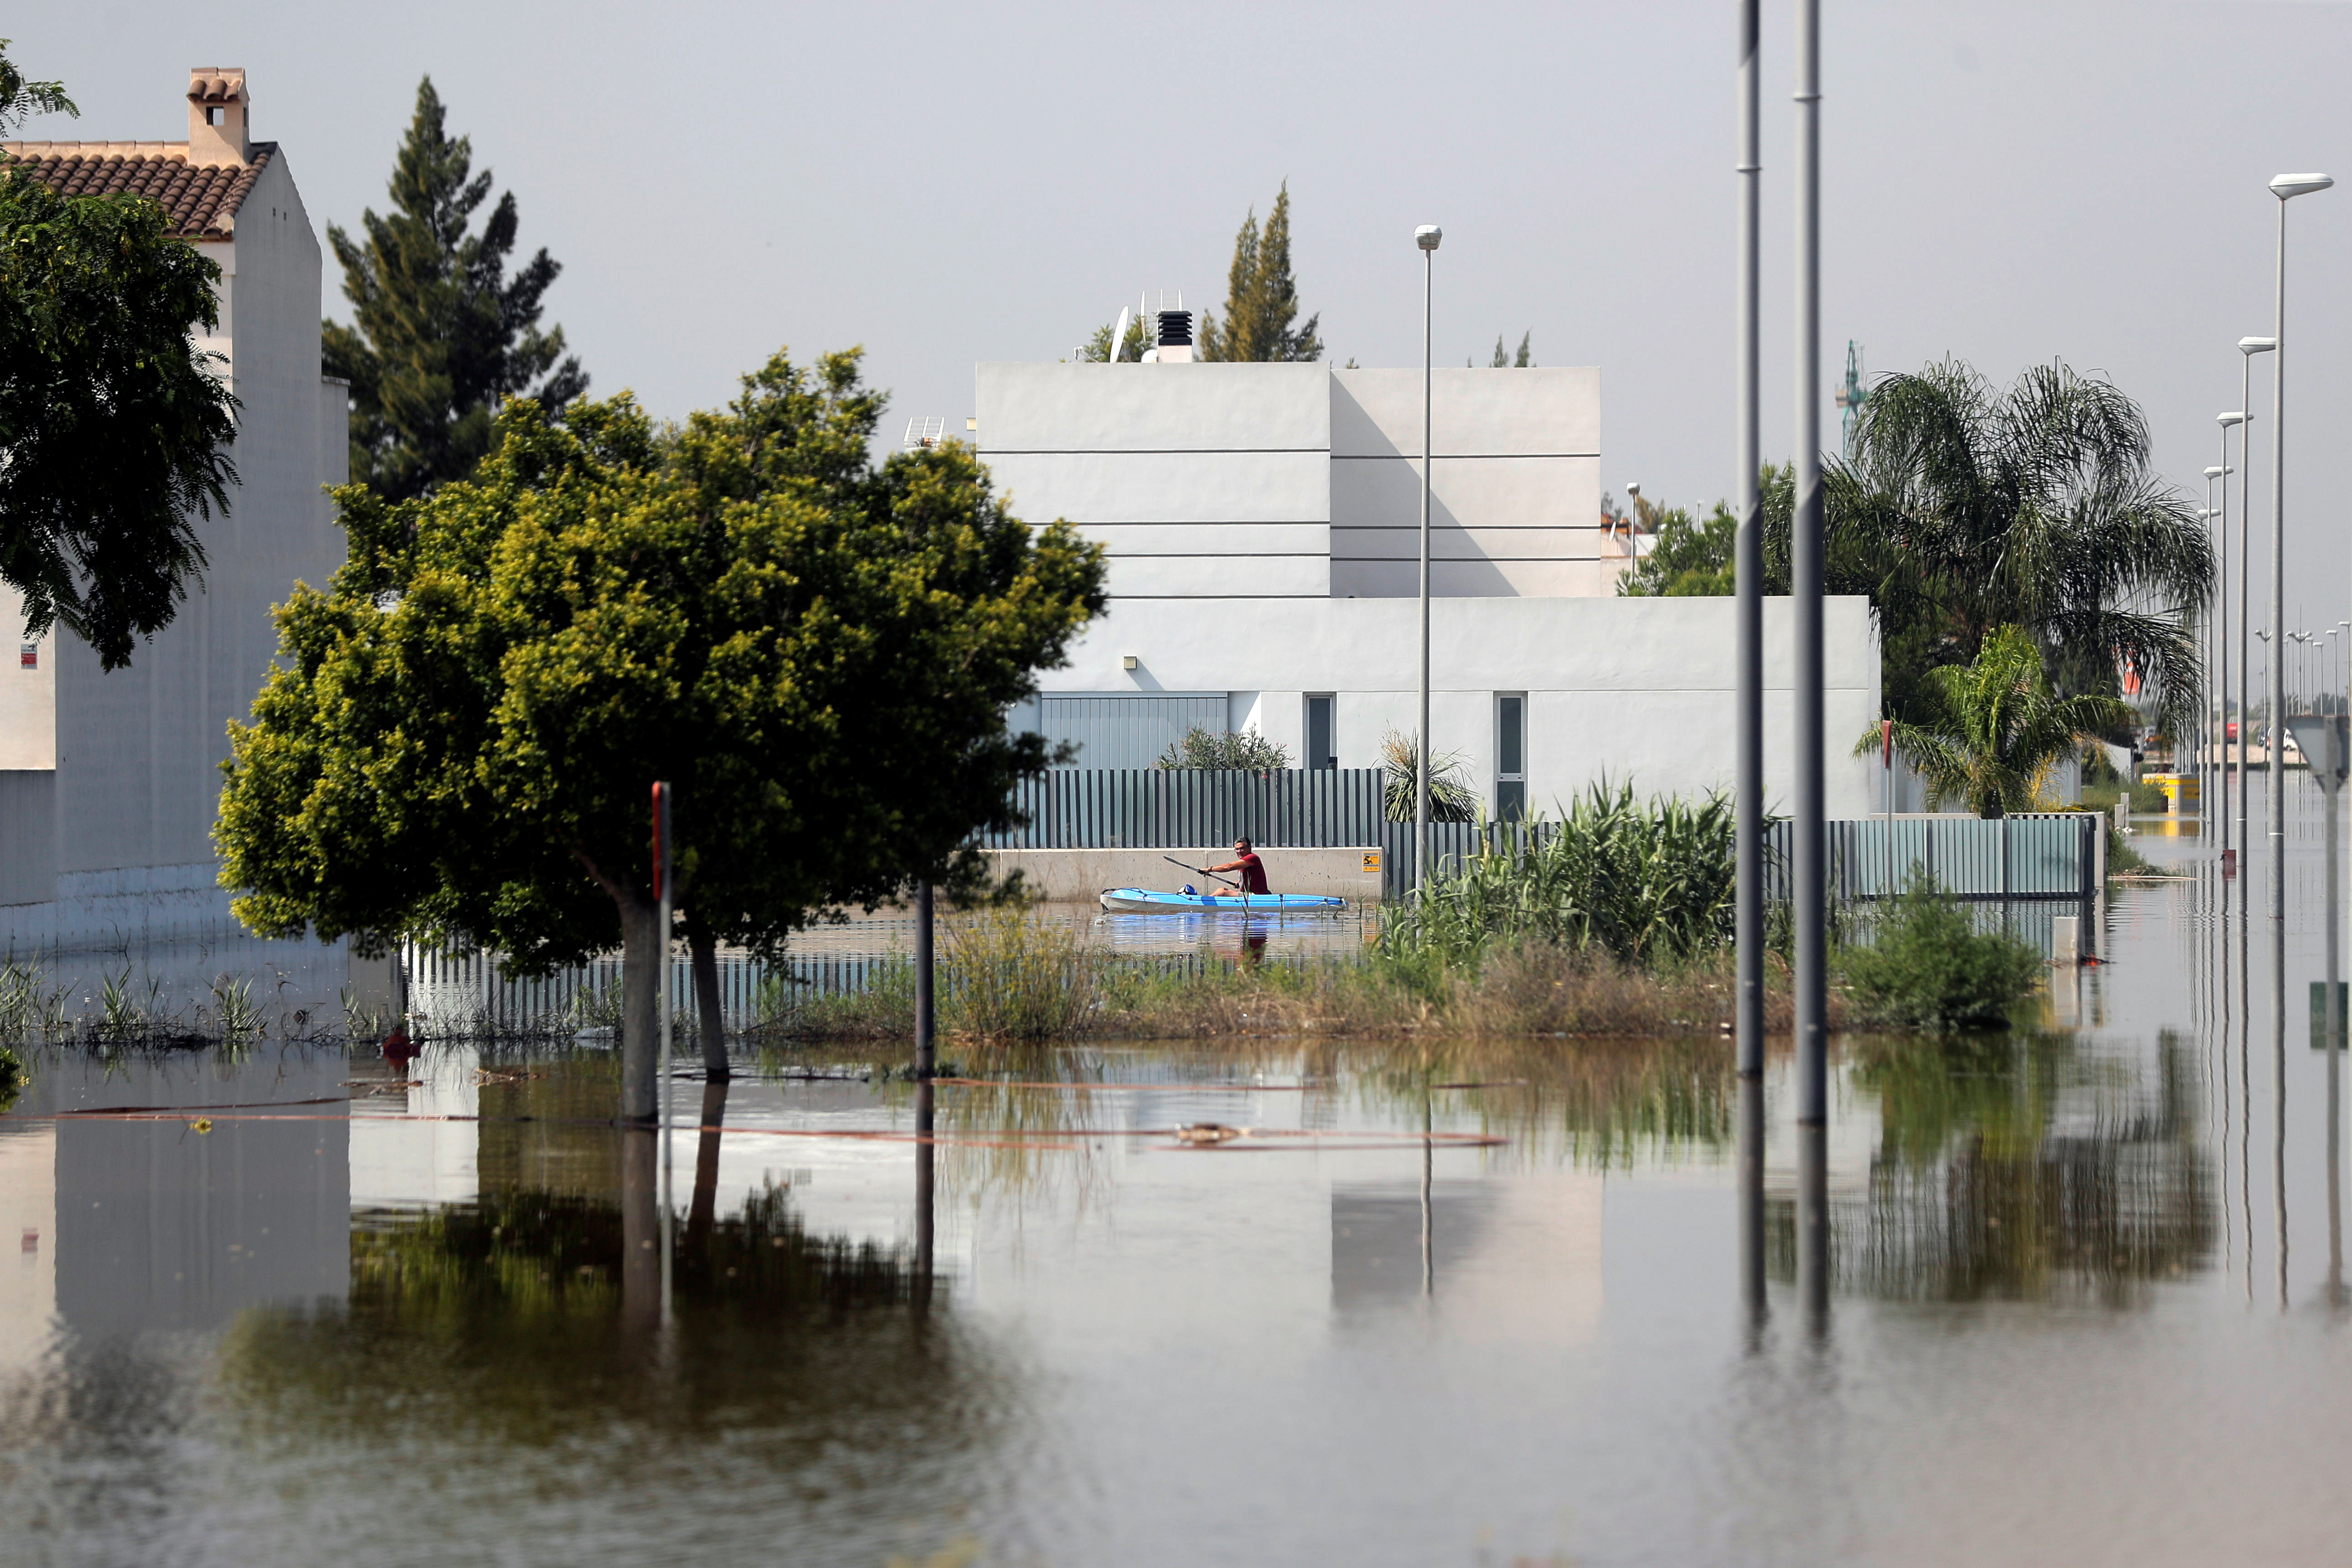 Spain approves 774 million euro help package after floods, wildfires